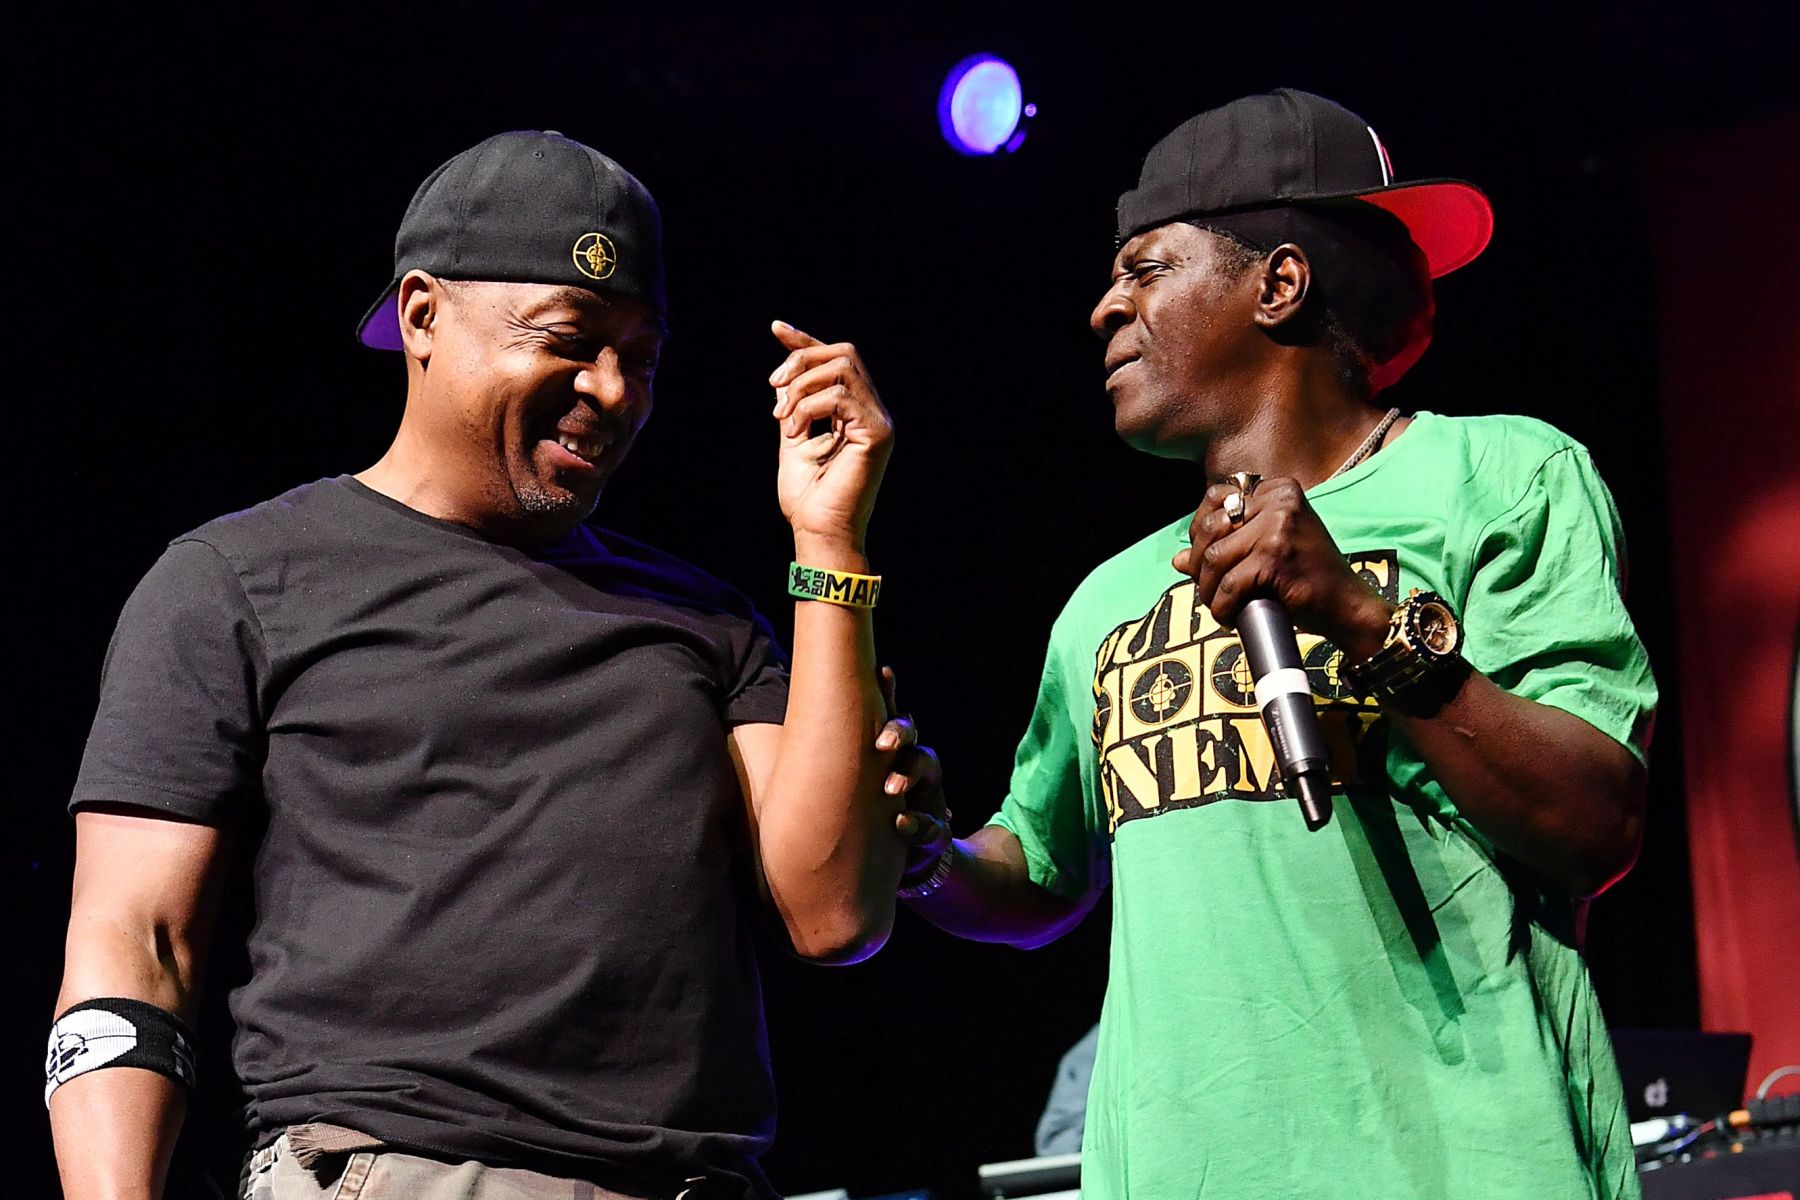 Rappers Flavor Flav, right, and Chuck D of the band Public Enemy perform at the O2 Arena in LondonBritain Public Enemy Concert, London, United Kingdom